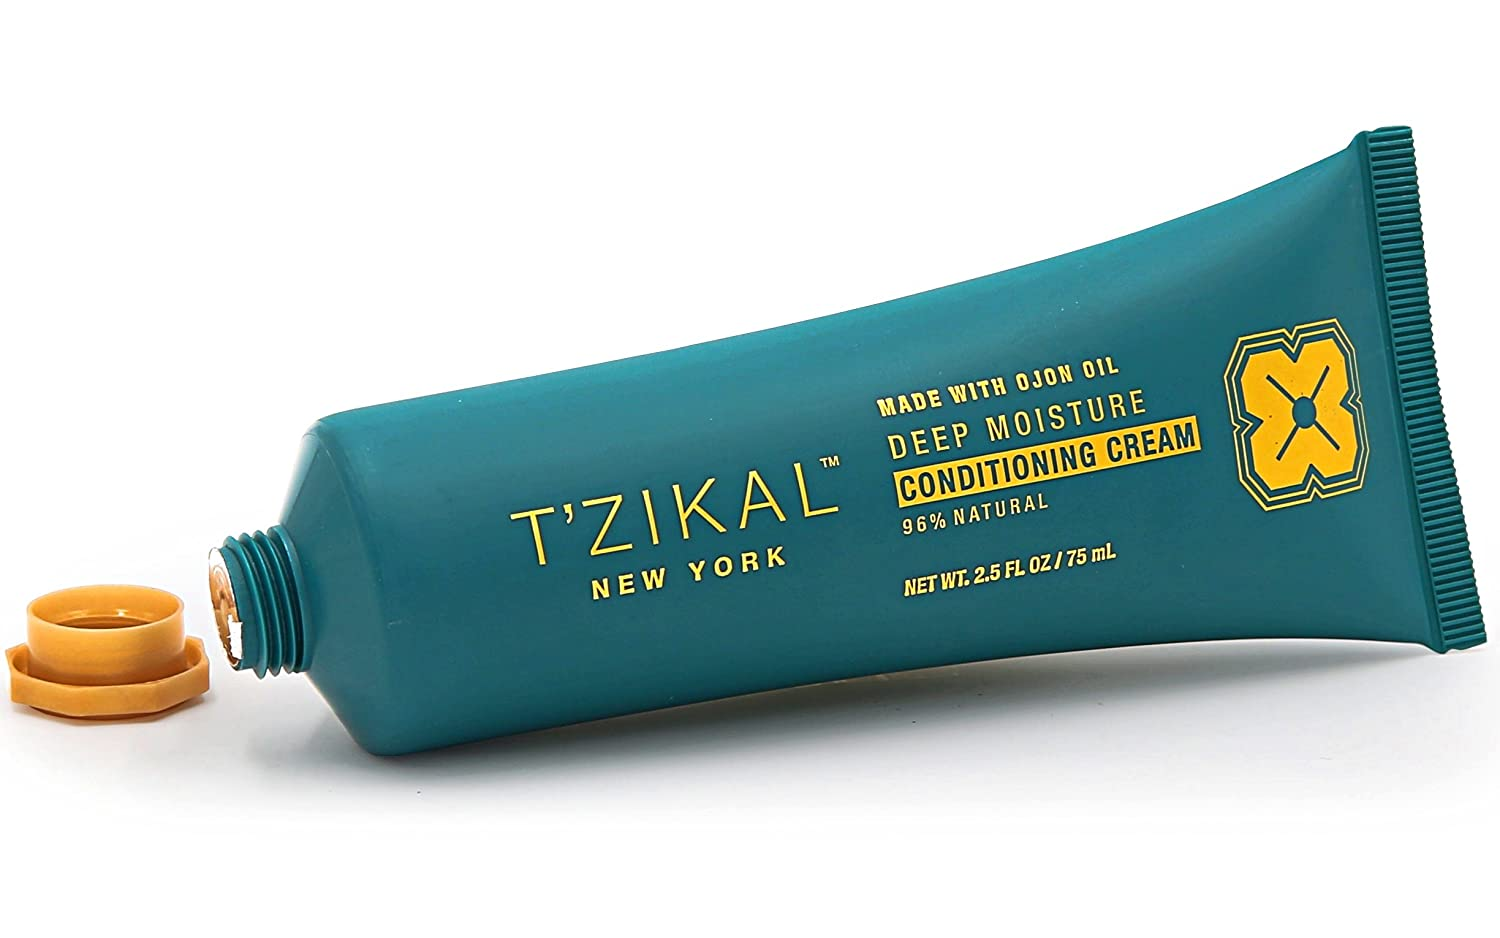 T'zikal Deep Moisturizing Conditioning Cream with Ojon Oil - natural hair treatment for damaged hair - Oil treatment for dry damaged hair- Paraben Free Conditioner T' zikal